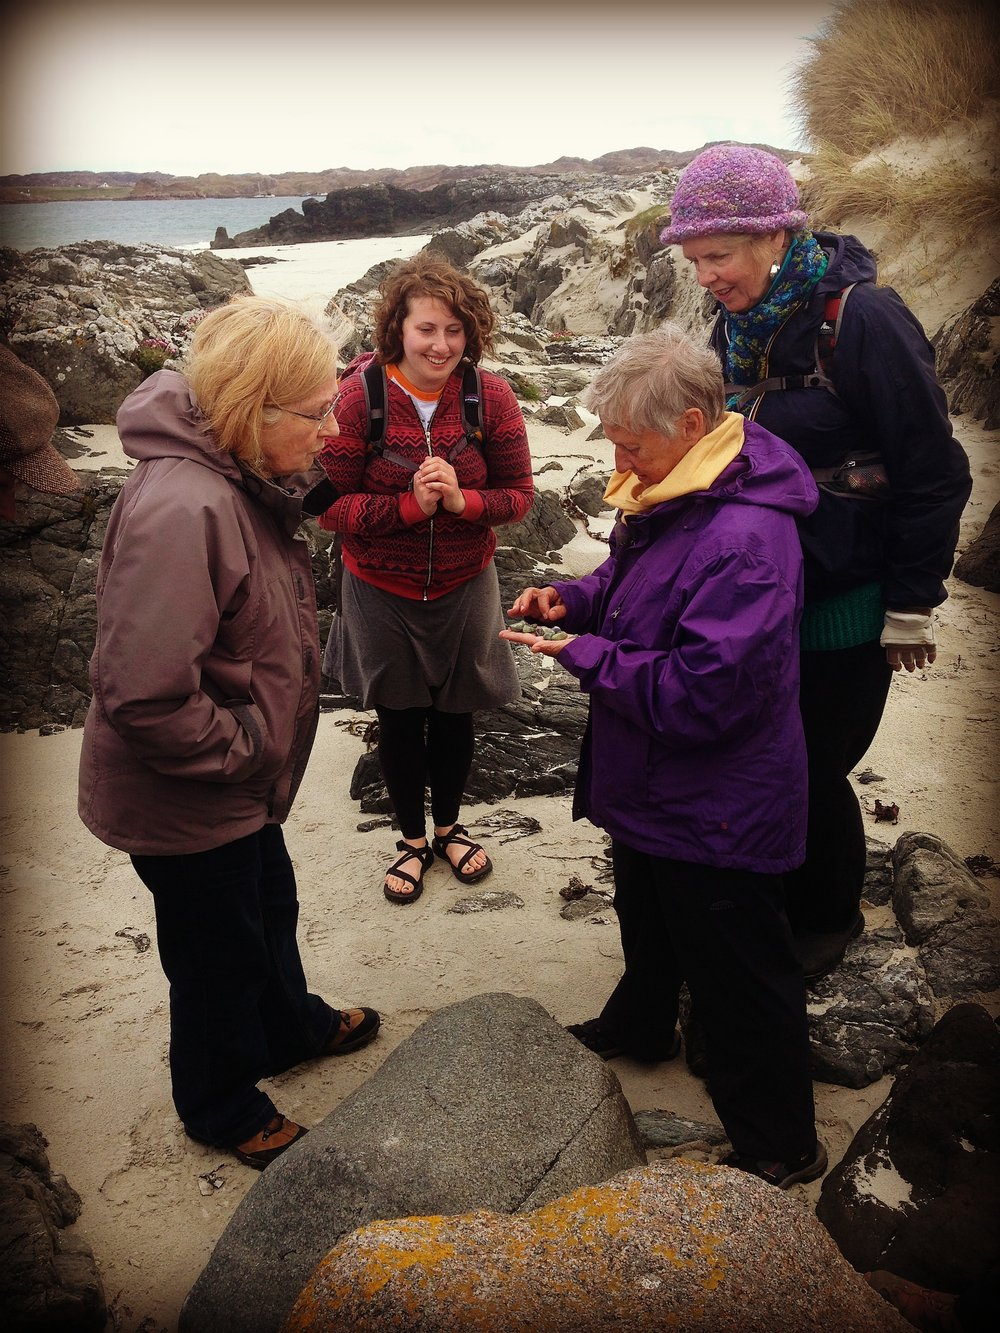 Exploring Iona's ancient stories through stone